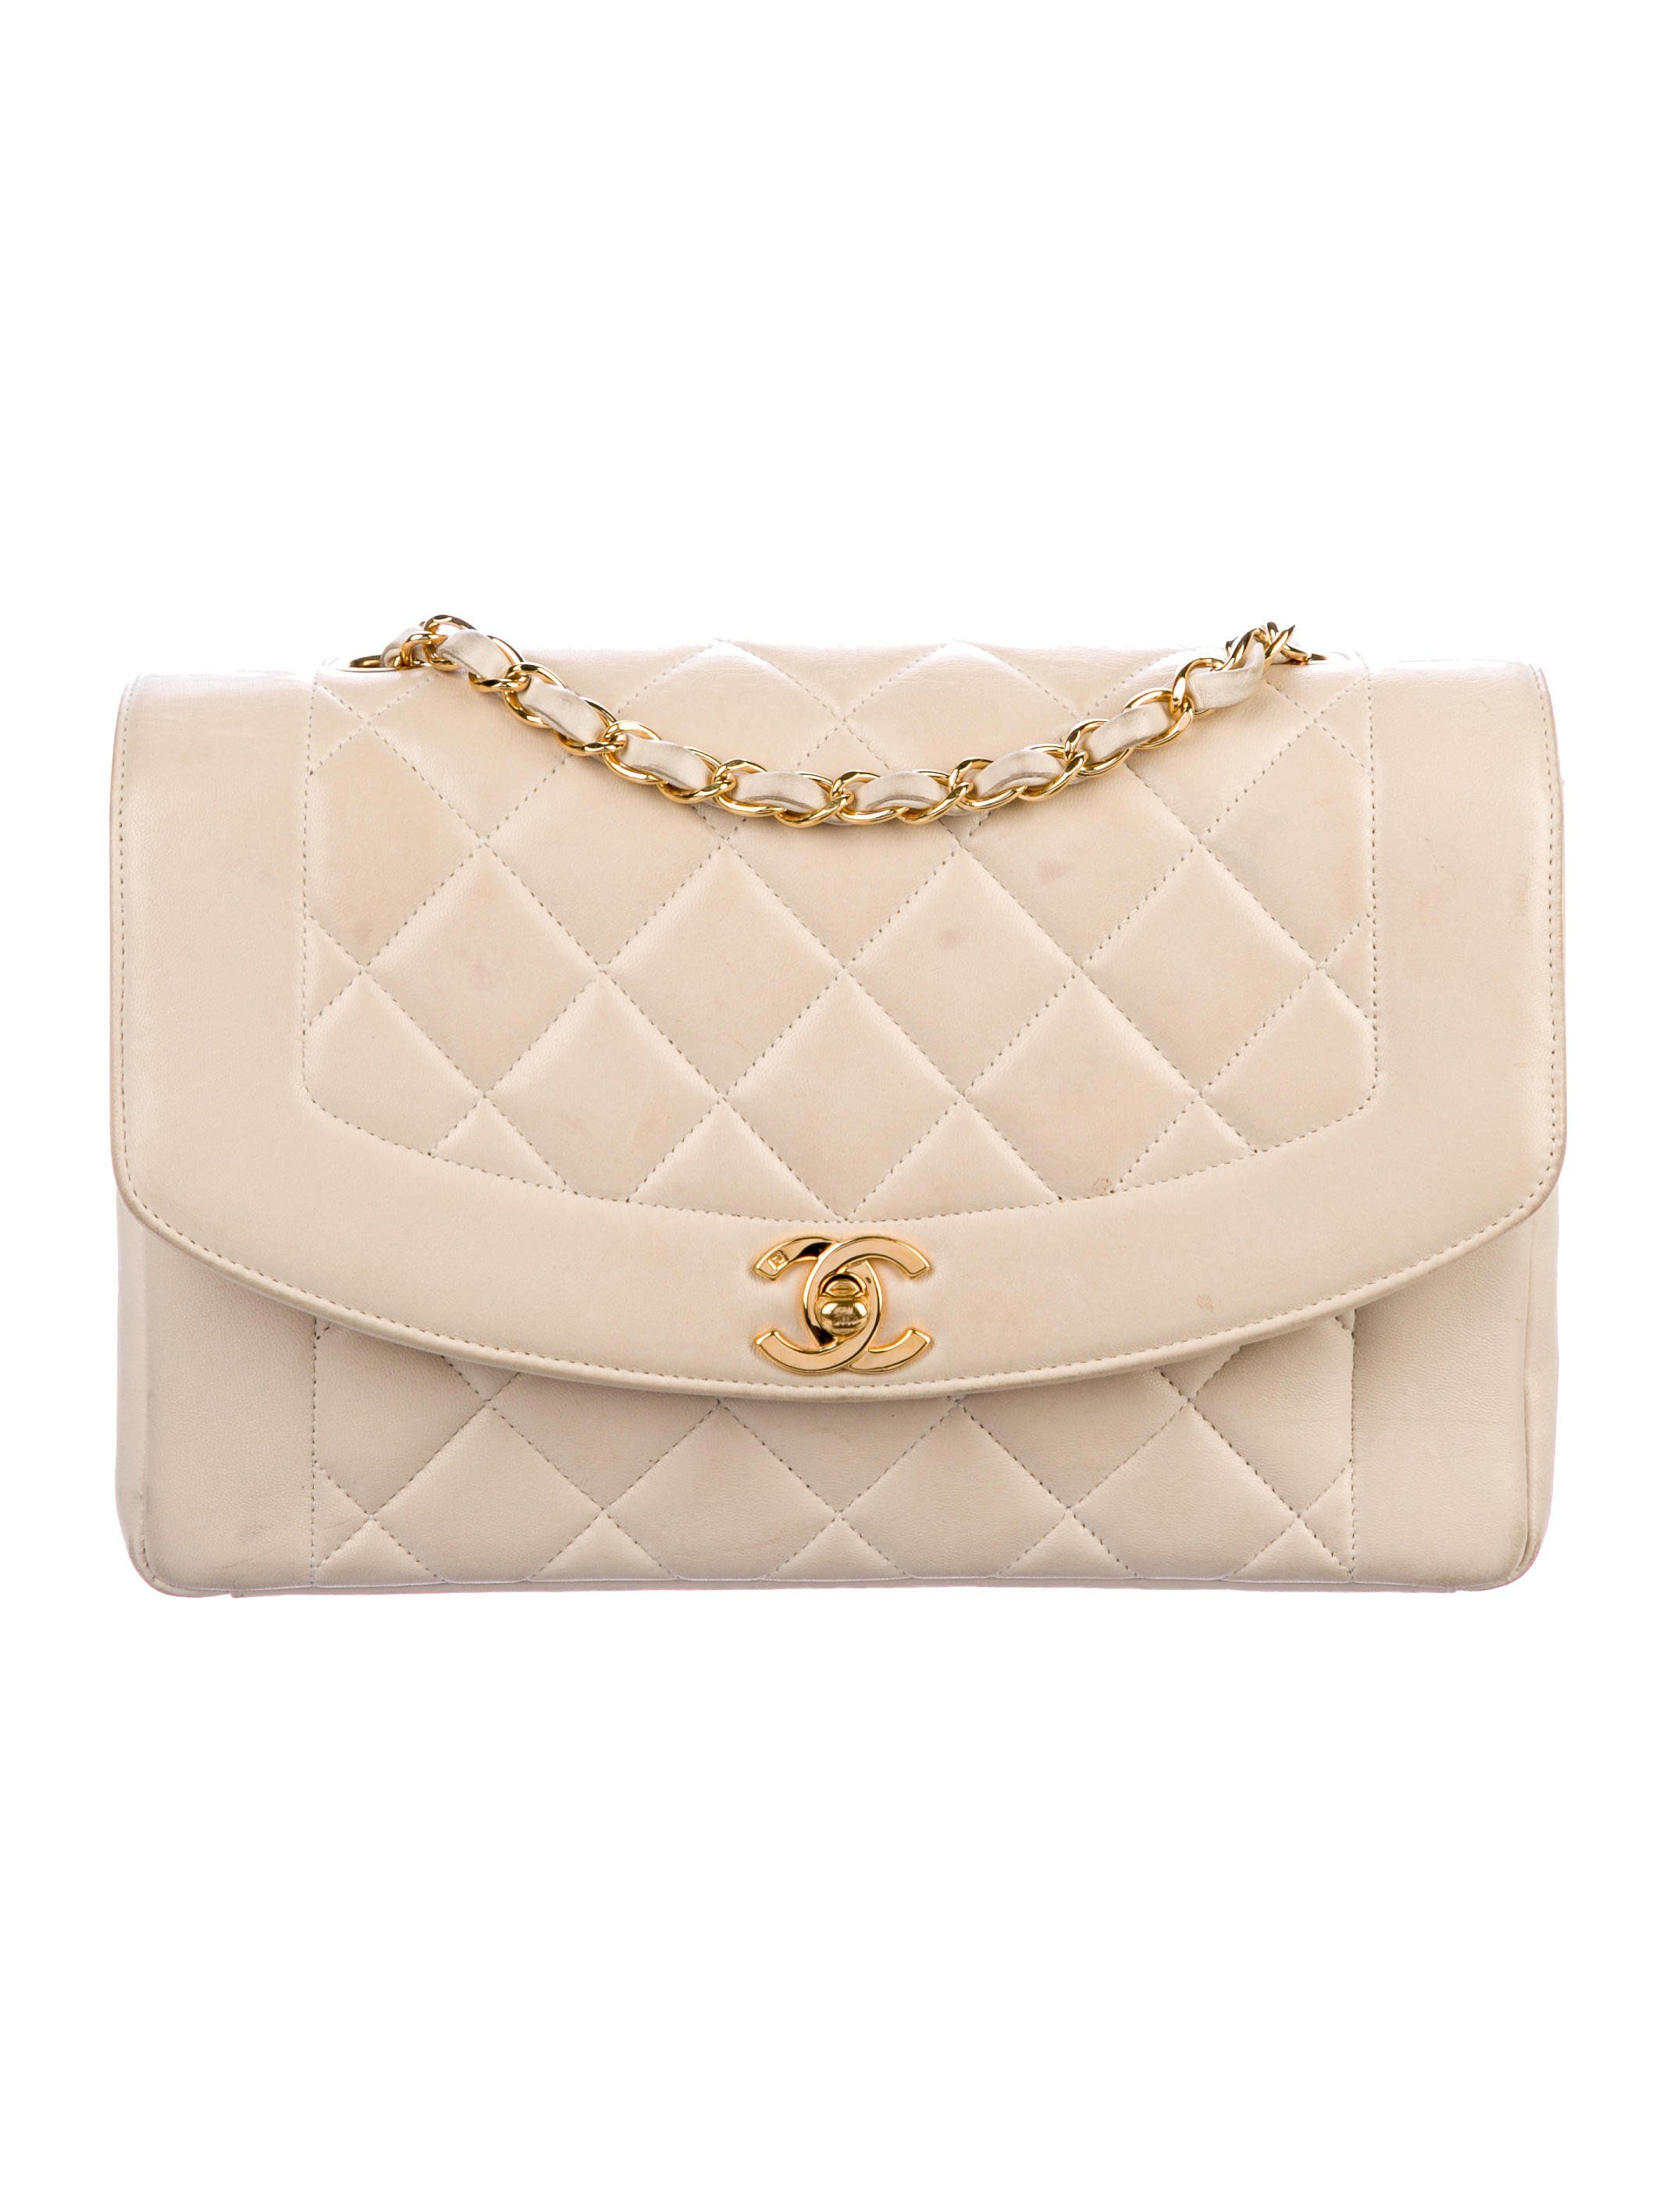 5e26df031e3555 Beige quilted Caviar leather vintage Chanel Medium Diana Flap bag with gold-tone  hardware,